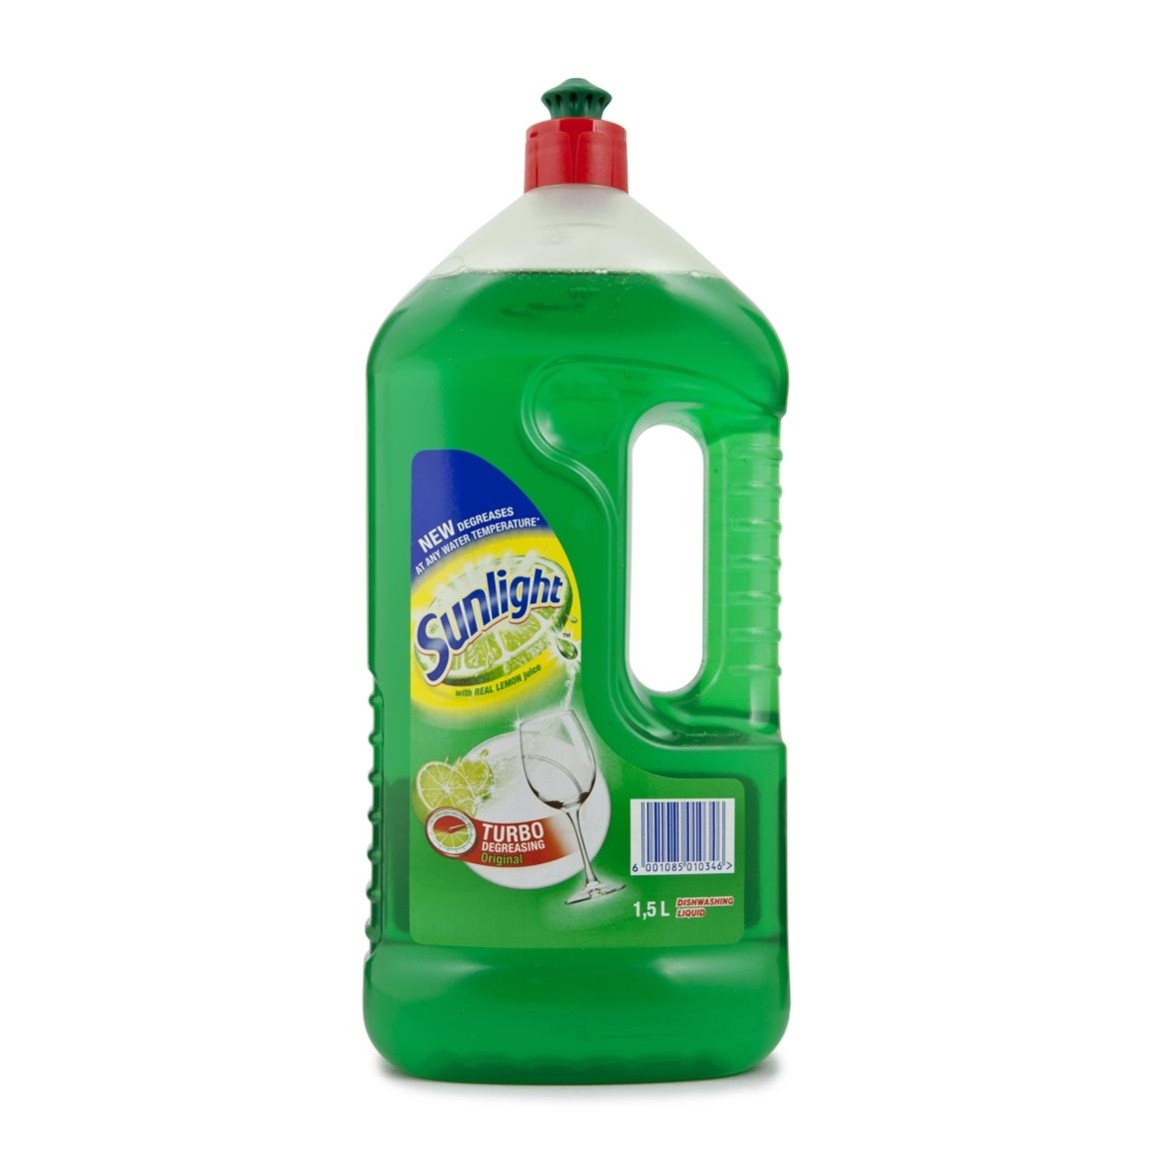 Sunlight Dishwashing Liquid 1.5 Litre